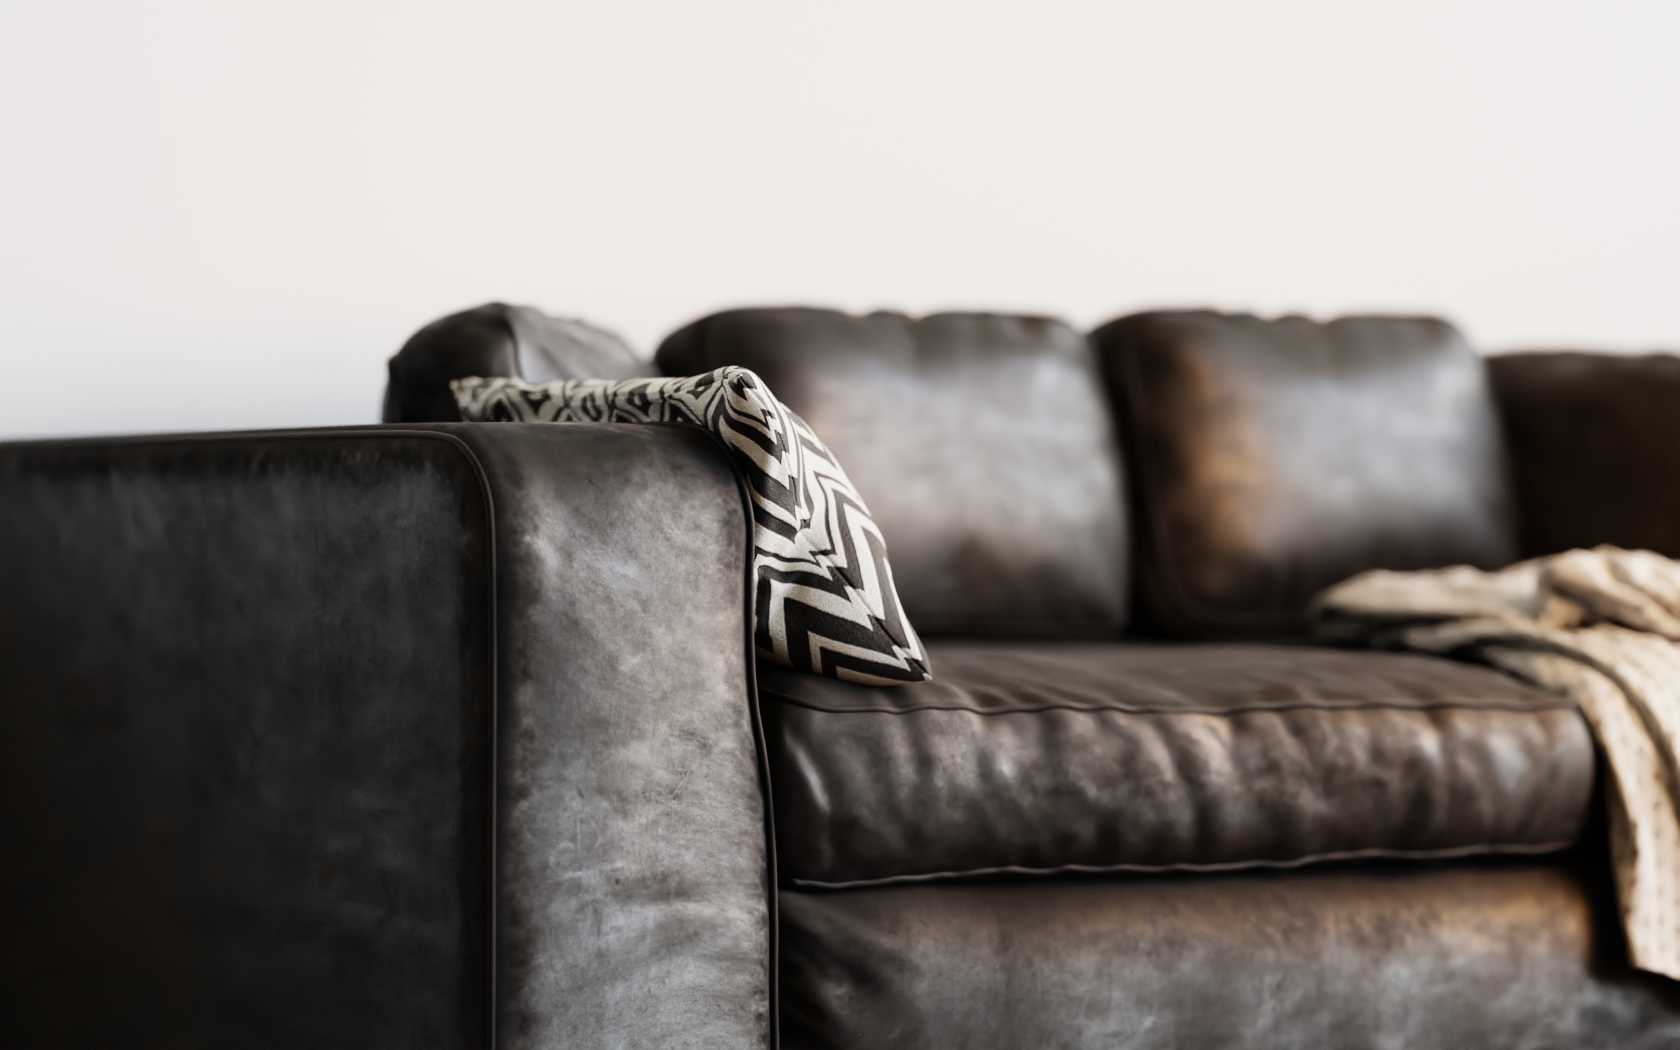 Leather Studio Sofa 3D model- EEVEE, Cycles preview image 2